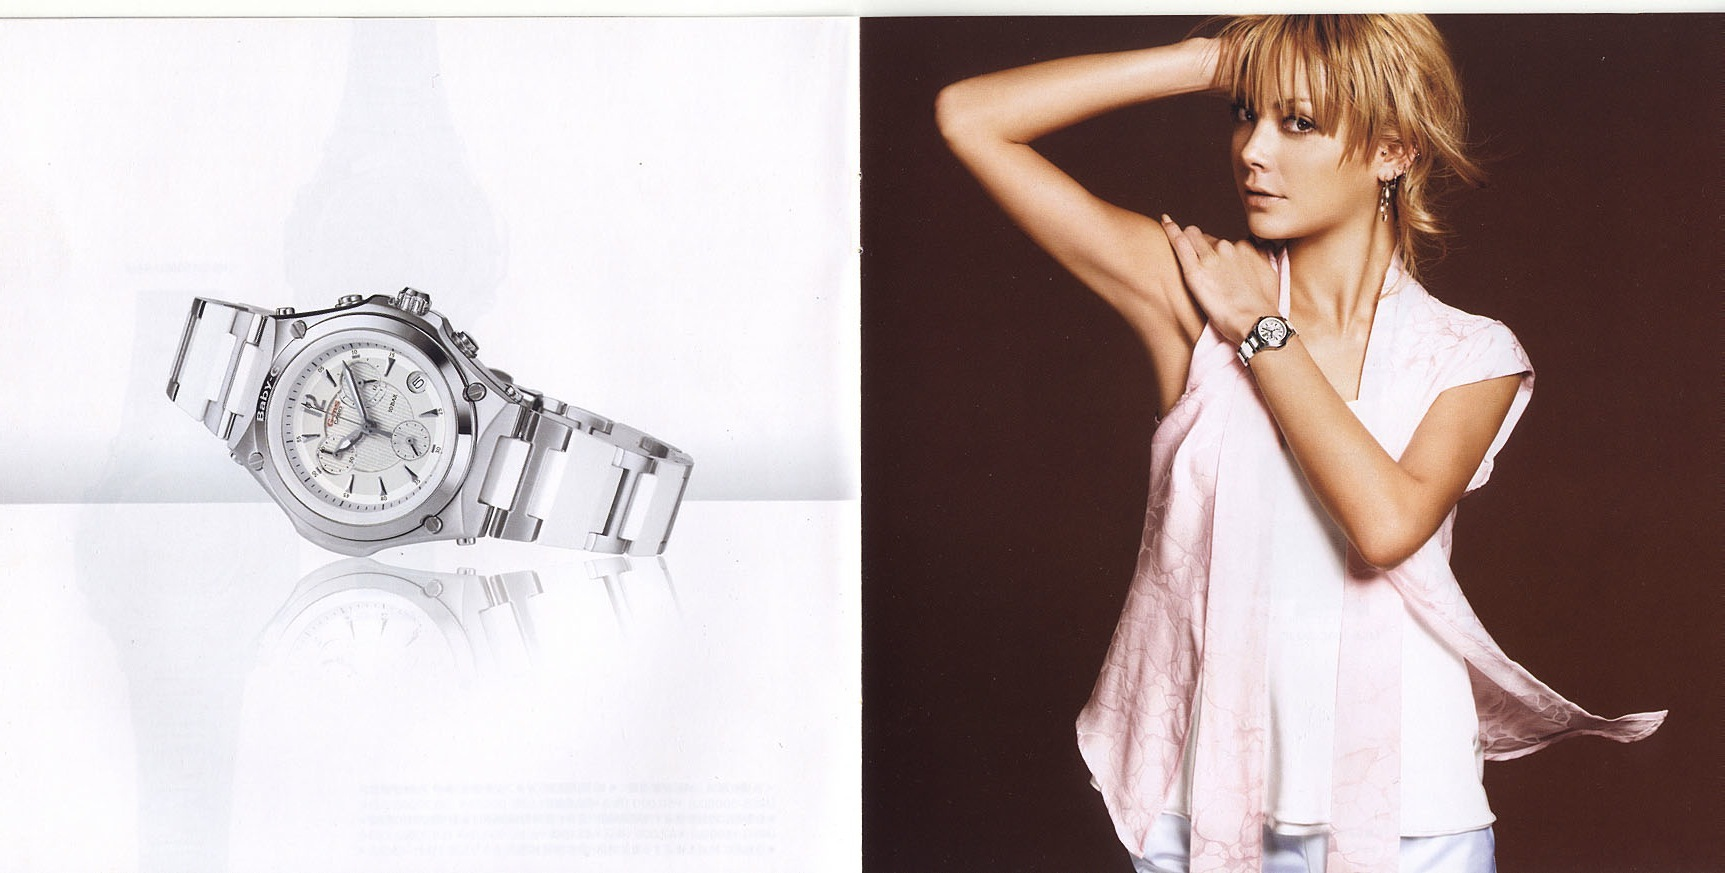 Baby-G-Casio-watches-2009-Catalog-Page-6.jpg